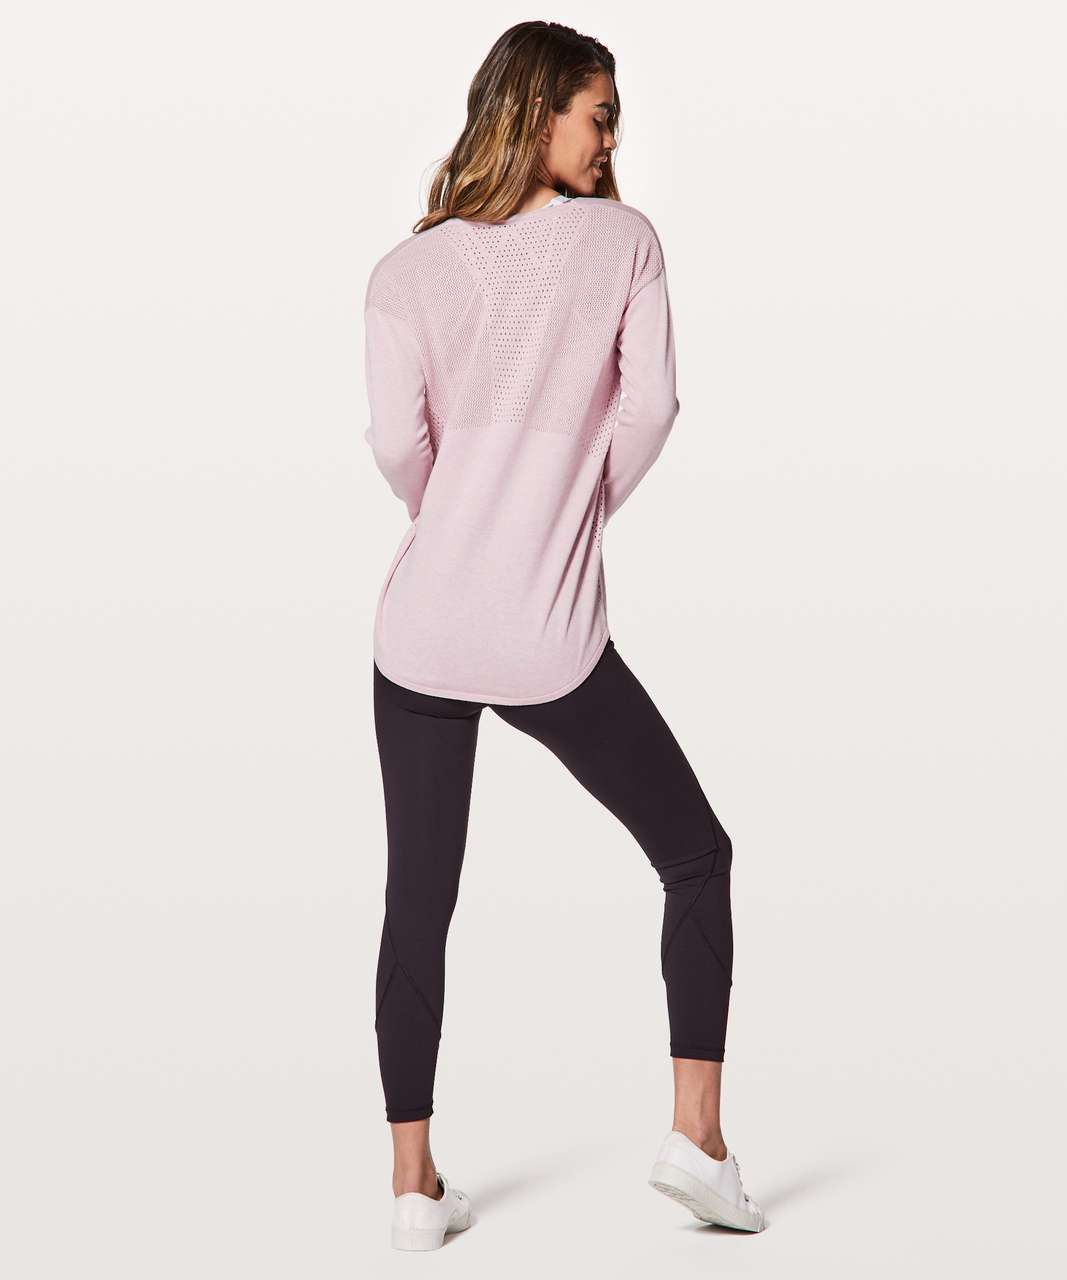 Lululemon Still Movement Sweater - Heathered Petals